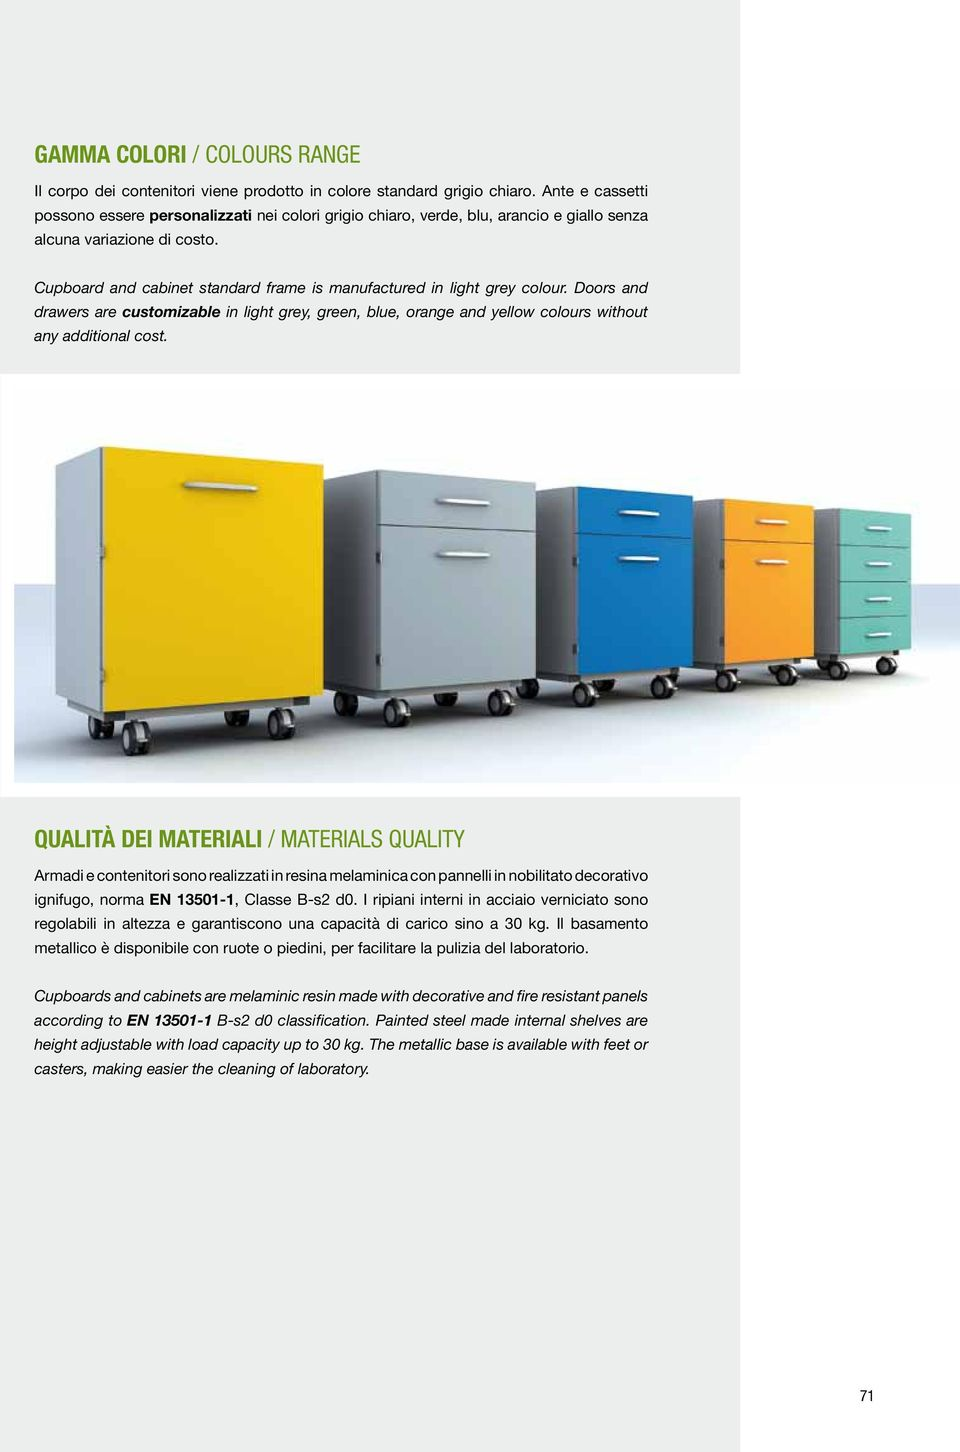 Cupboard and cabinet standard frame is manufactured in light grey colour. Doors and drawers are customizable in light grey, green, blue, orange and yellow colours without any additional cost.